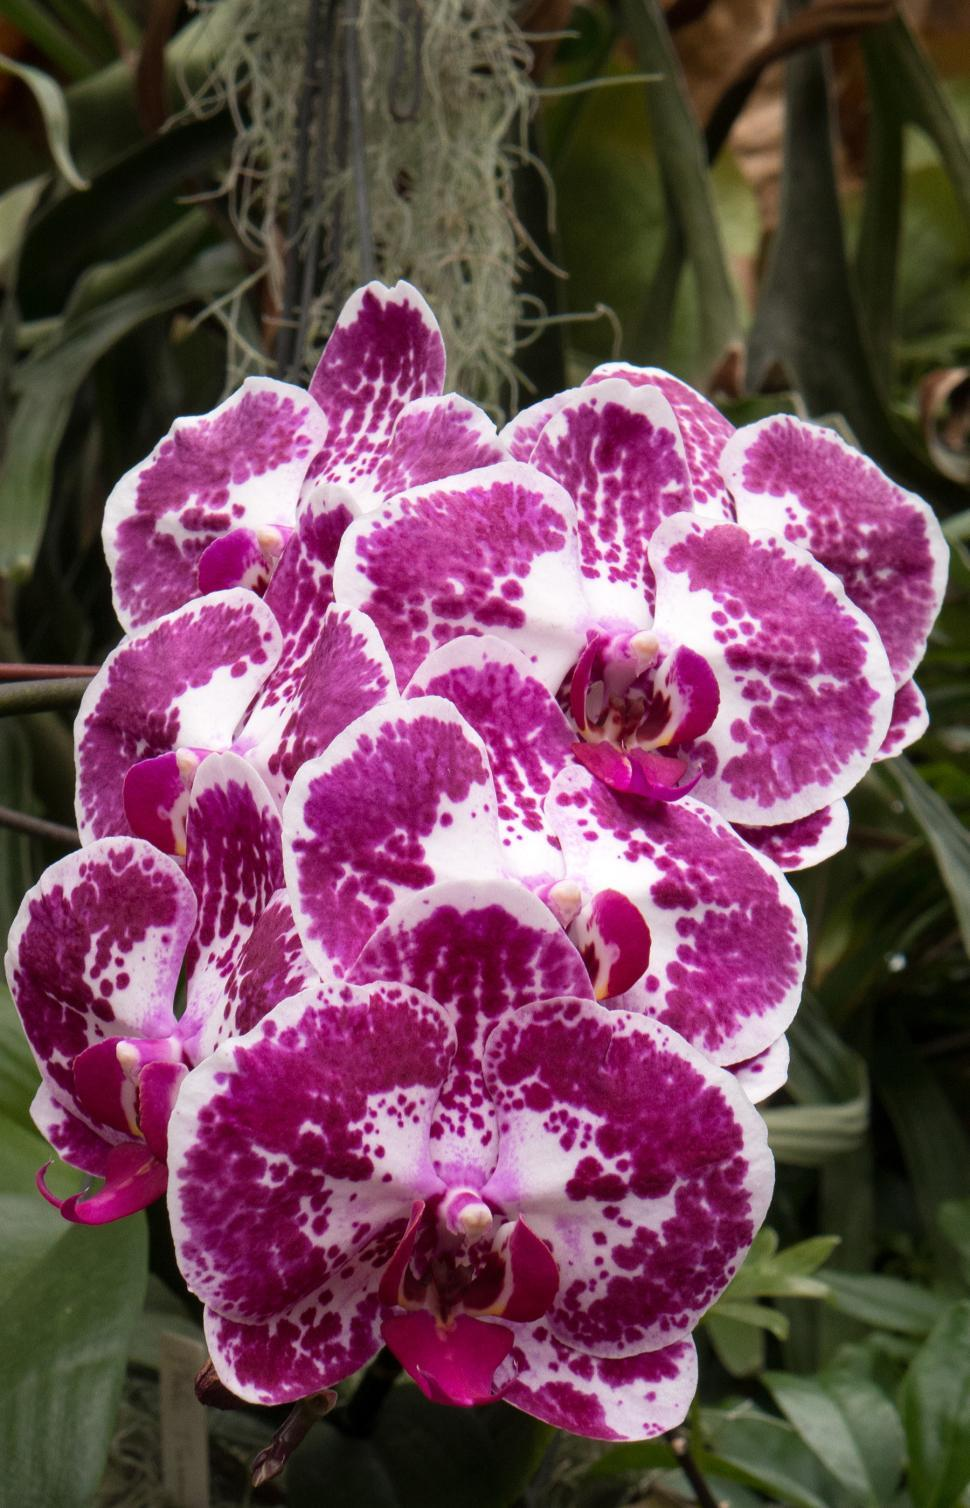 Download Free Stock HD Photo of Cluster of Maroon Moth Orchid Flowers Online